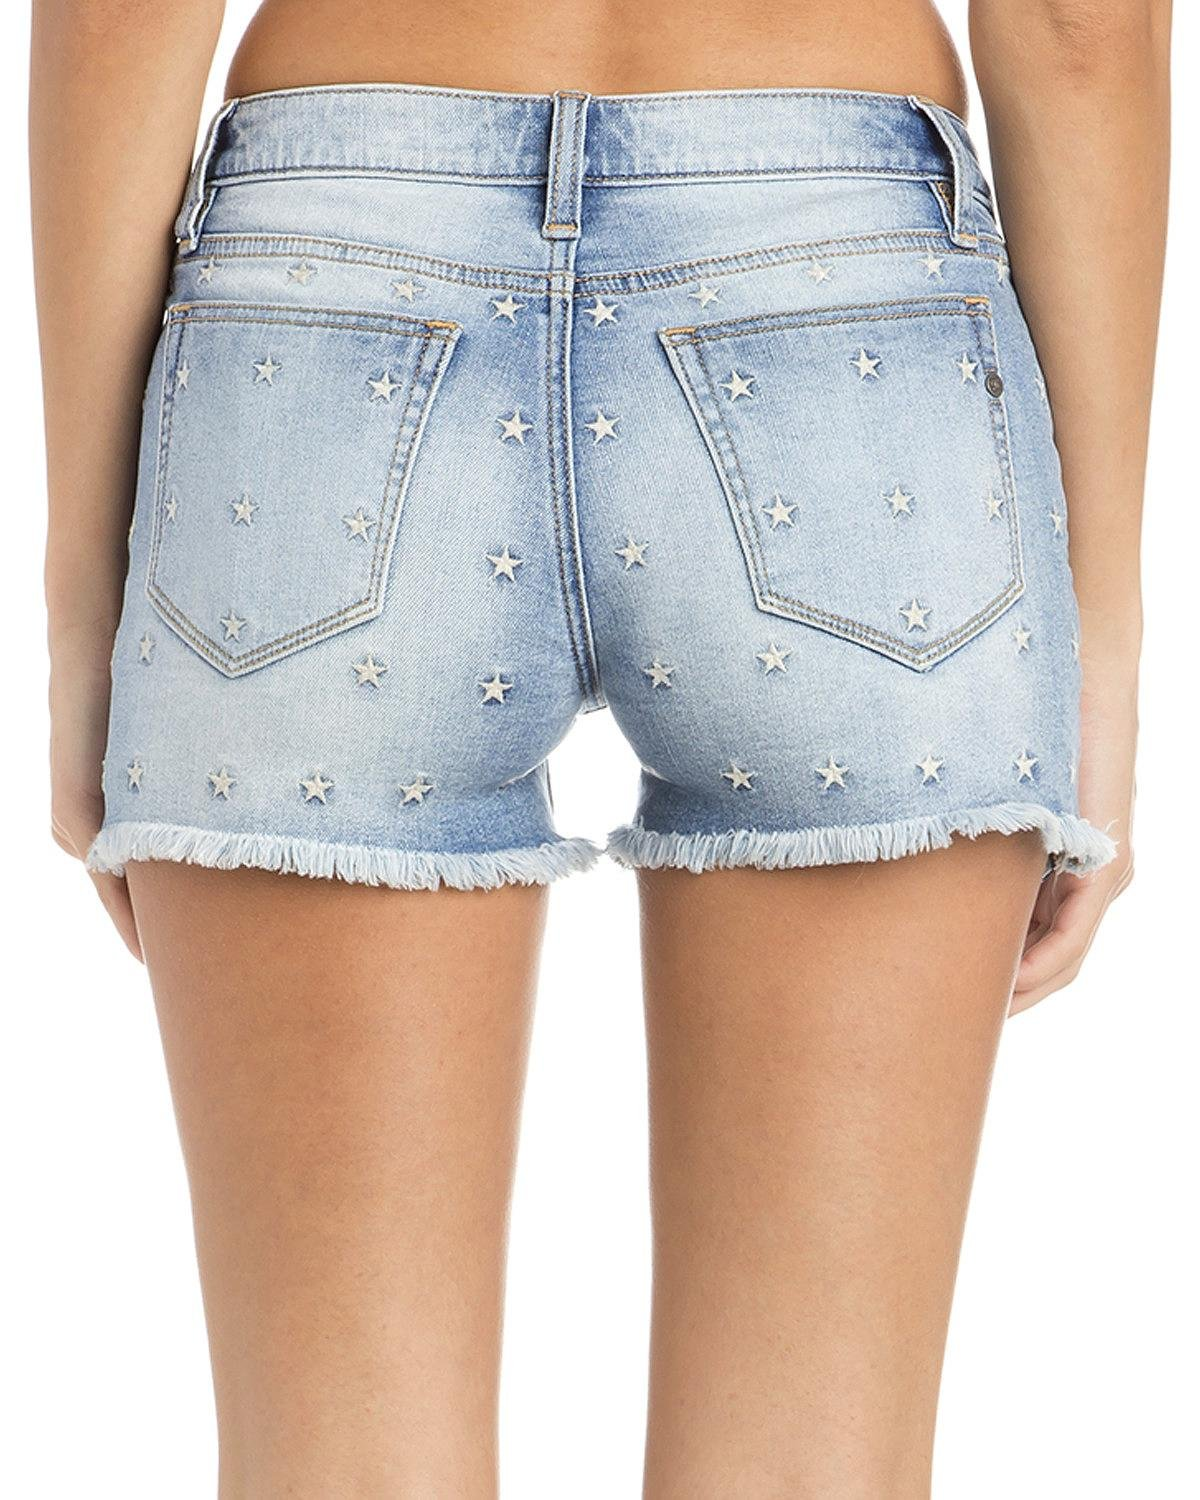 Miss Me Women's Americana Mid-Rise Denim Cutoff Shorts Blue 30